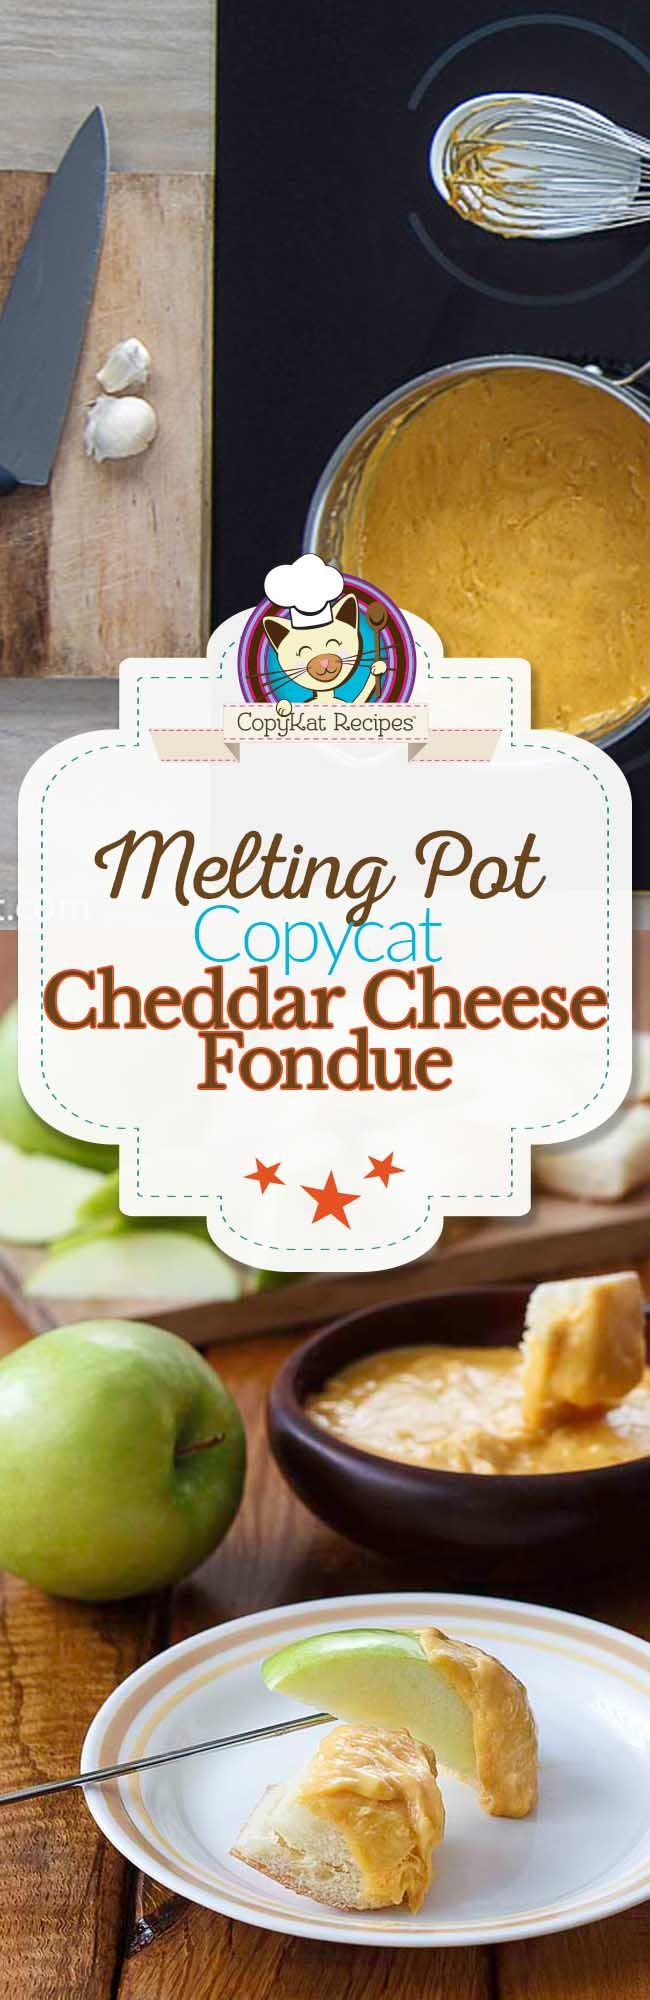 Step by Step instructions on how to make the Melting Pot Cheddar Cheese Fondue.